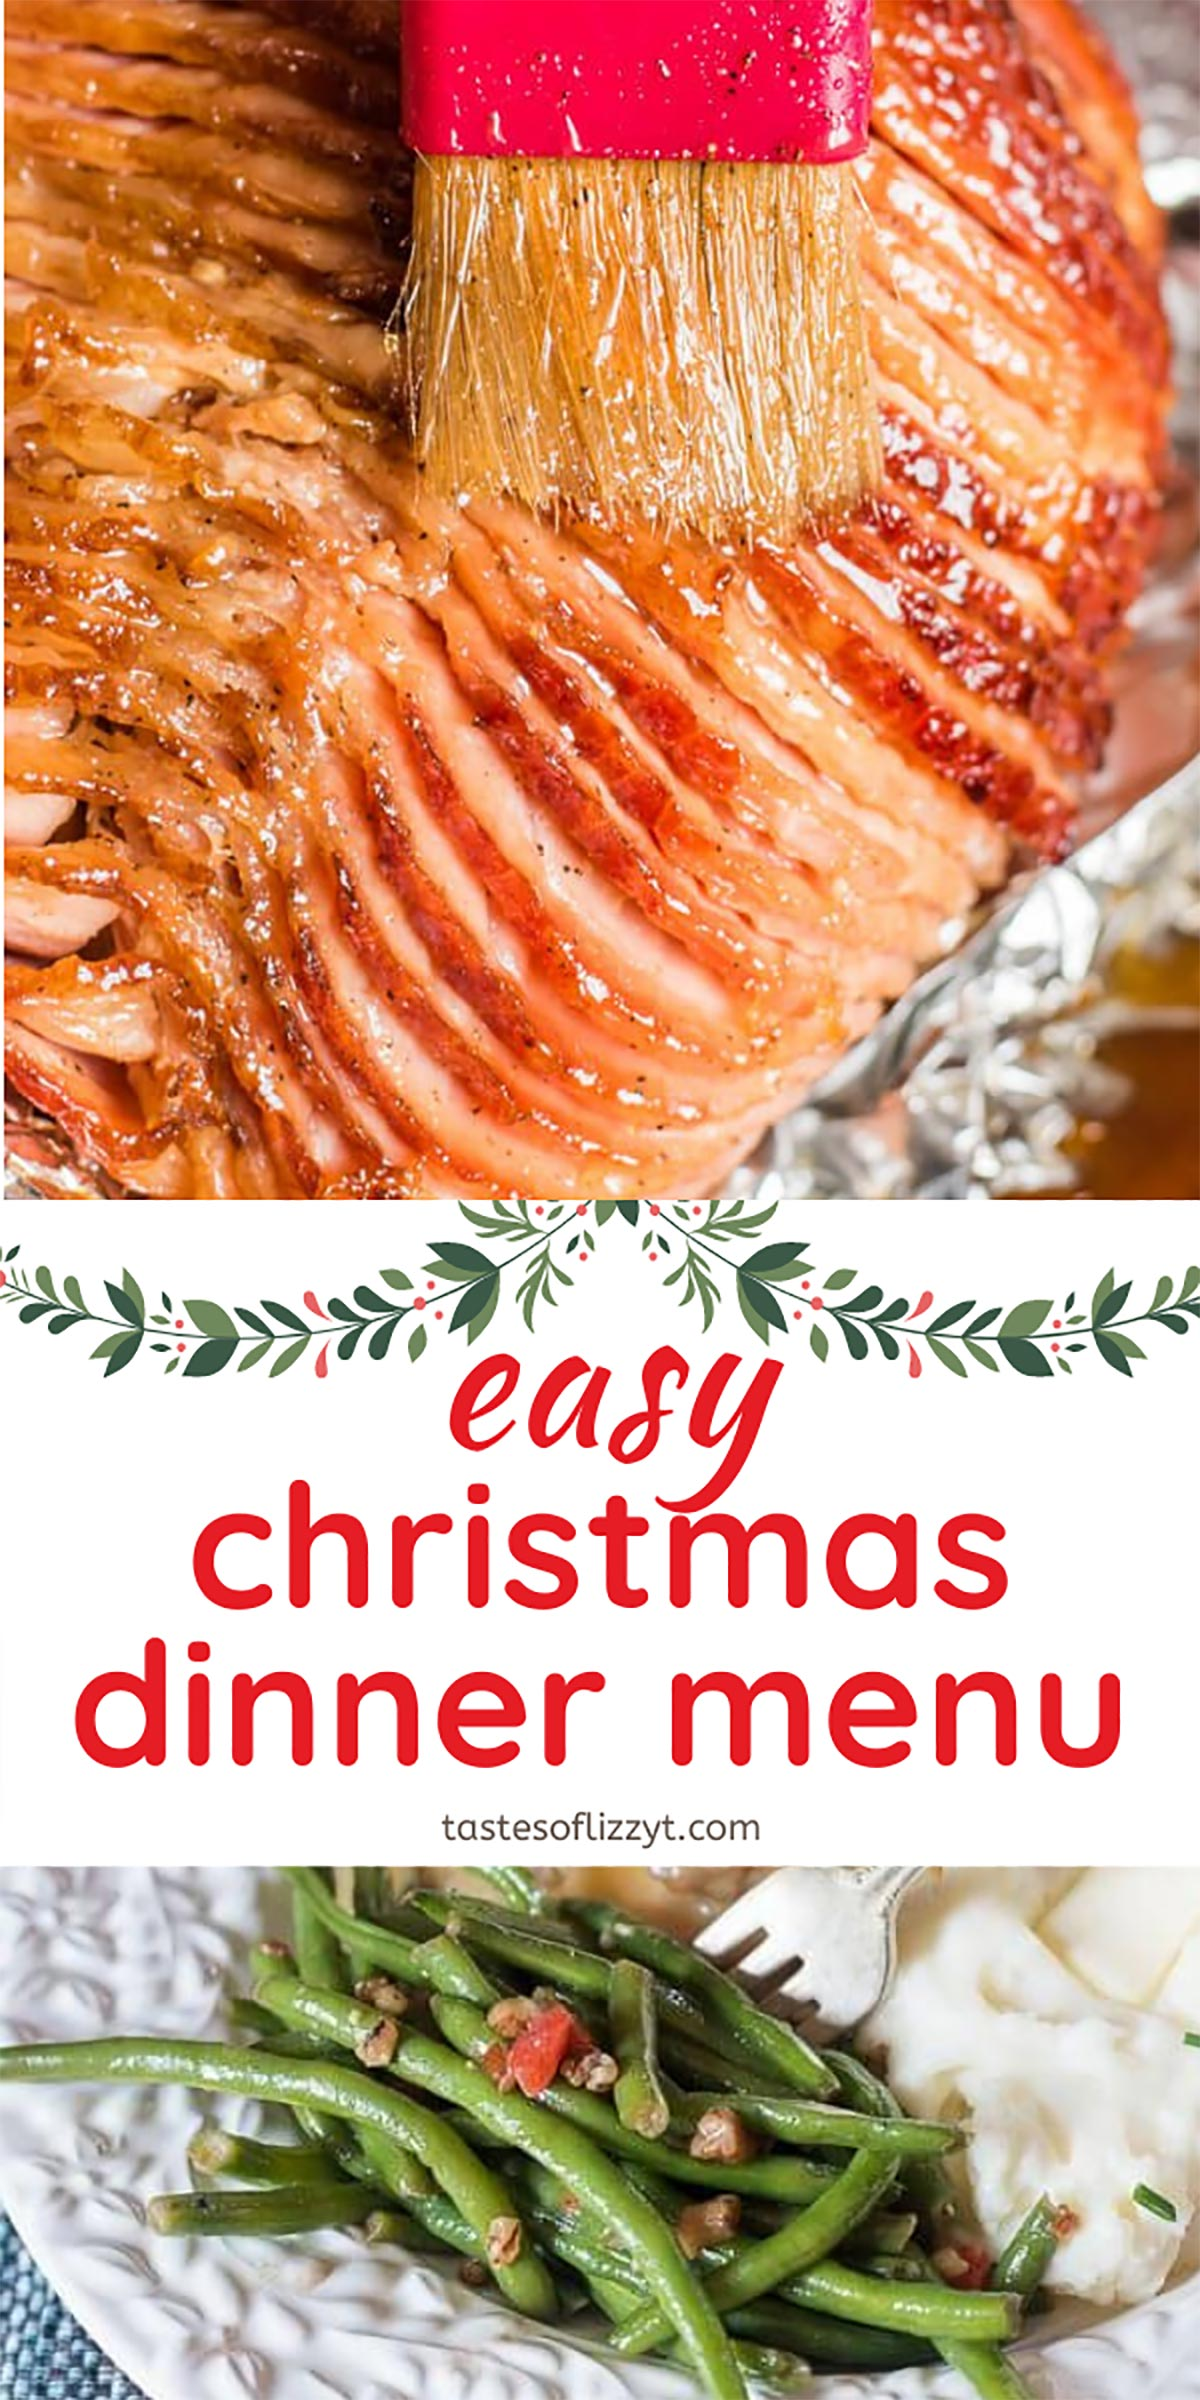 How to plan an easy Christmas dinner menu that the whole family will love! Plus tips on how to get it all done so you day can be relaxing. via @tastesoflizzyt